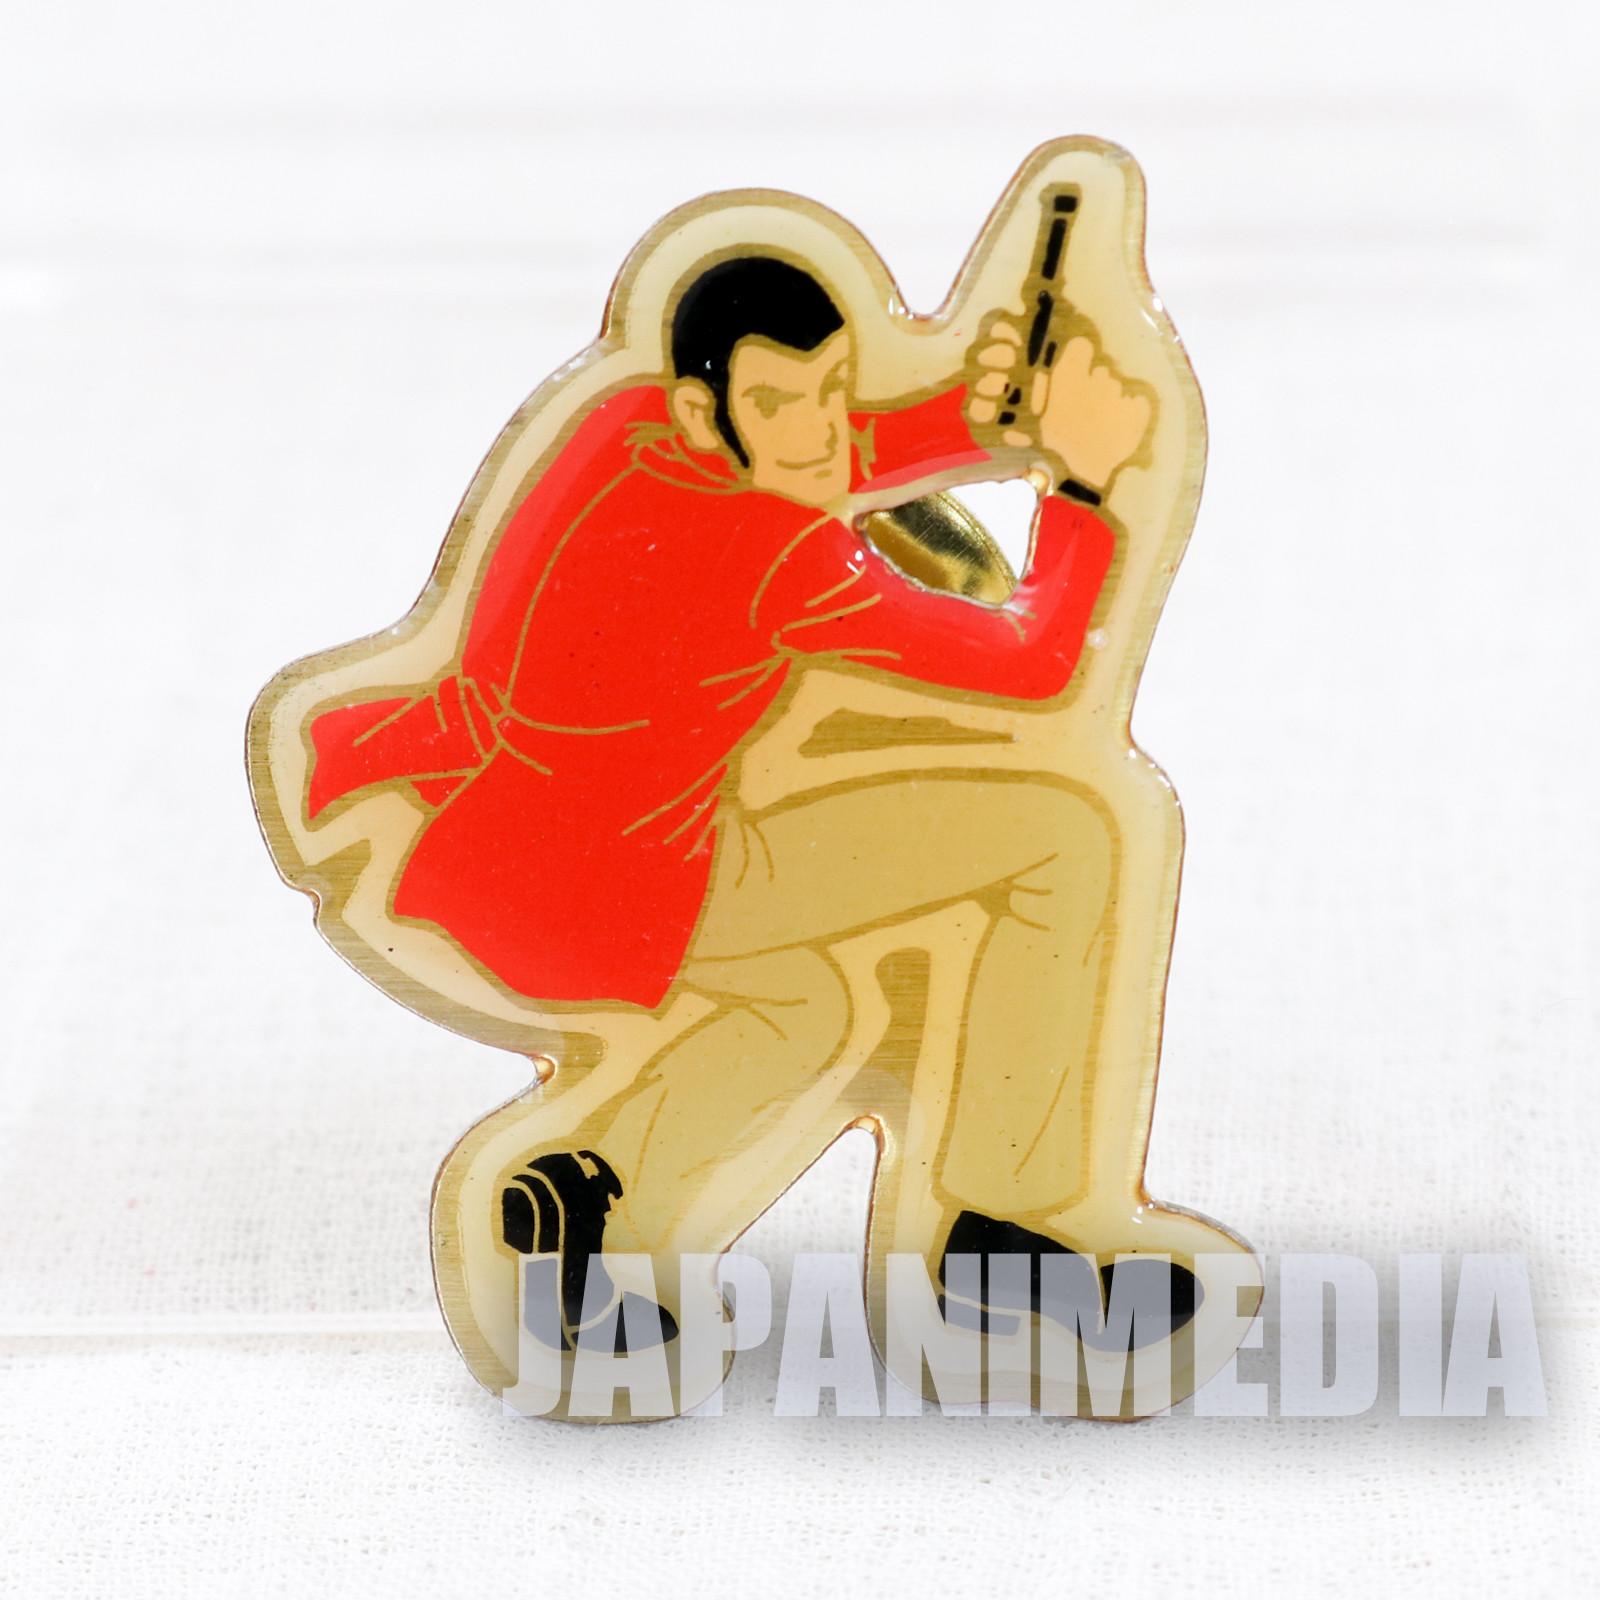 Lupin the Third (3rd) Metal Pins #1 JAPAN ANIME